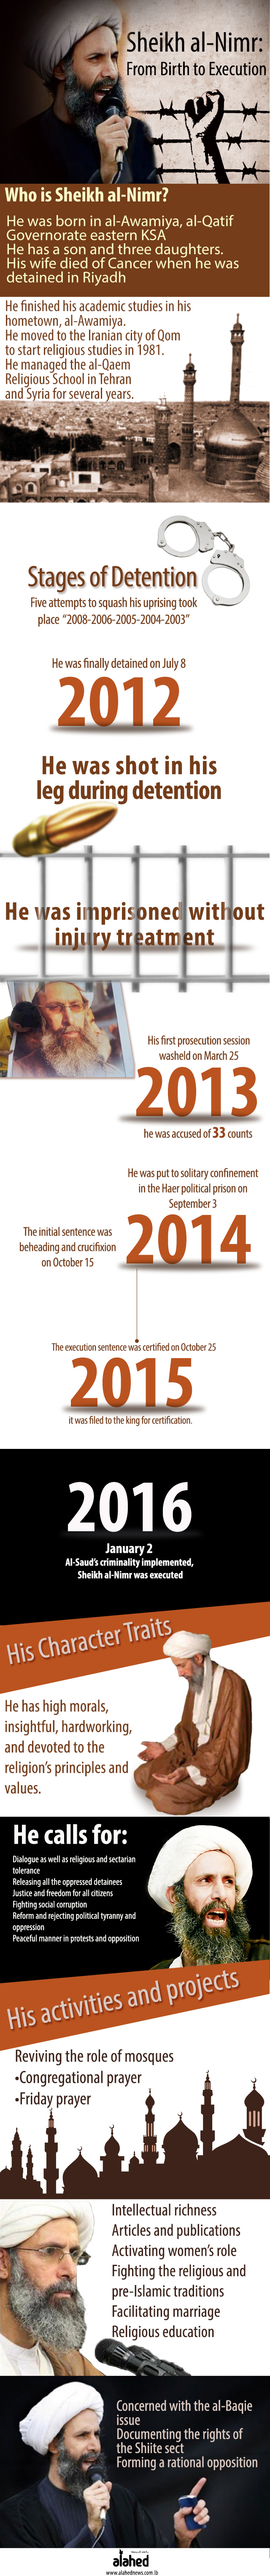 Sheikh al-Nimr: From Birth to Execution... [Info-graphics]